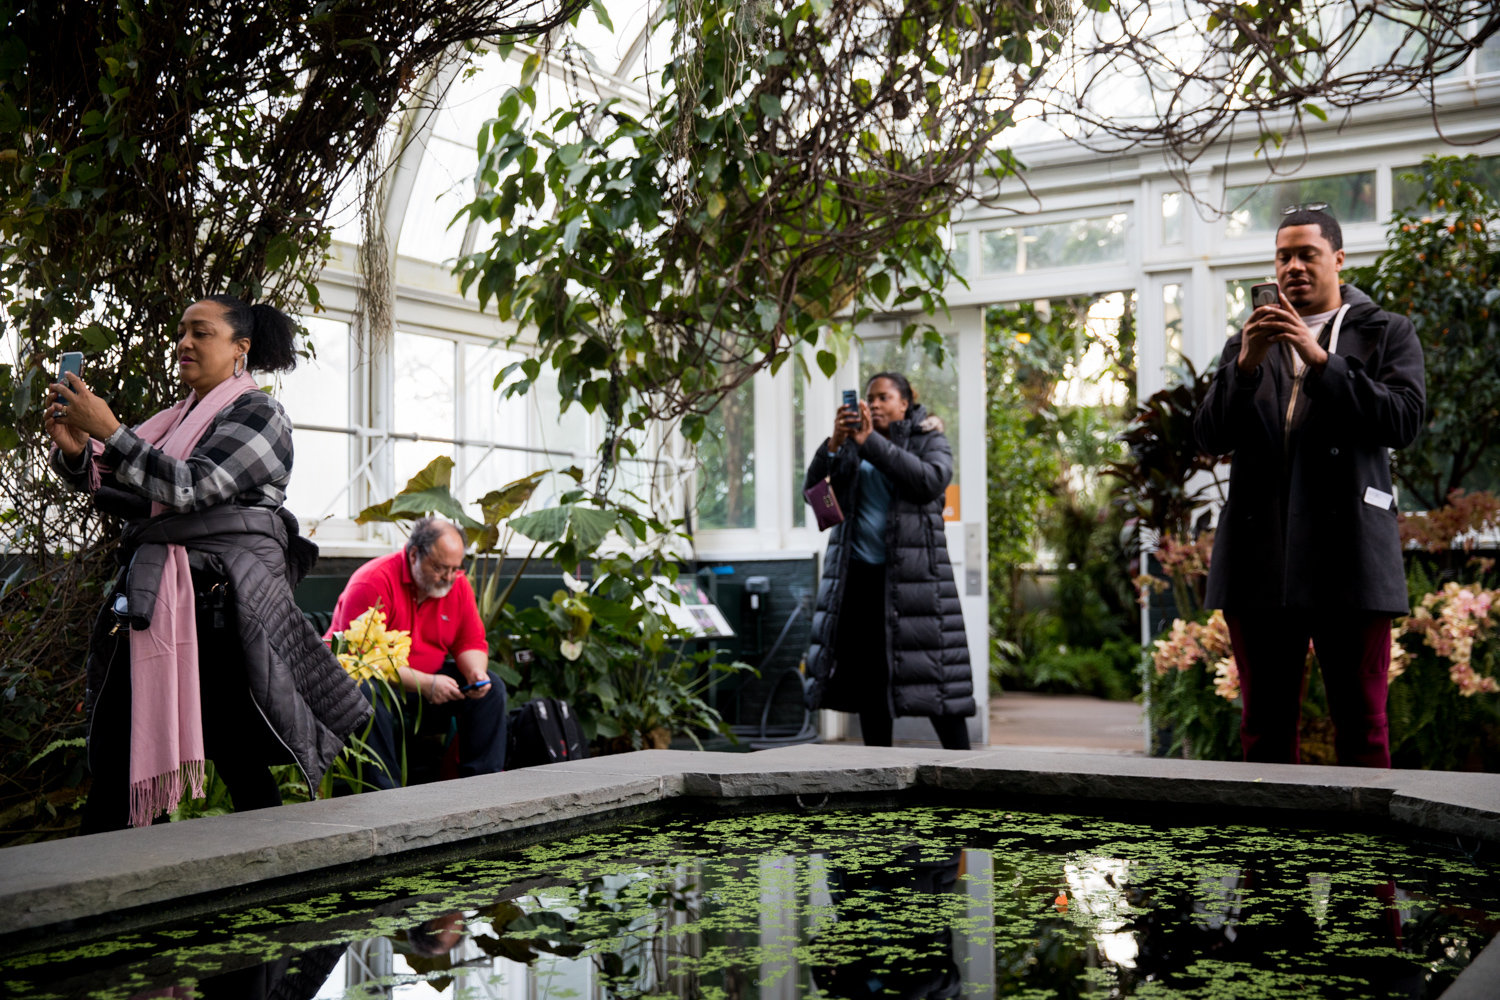 Visitors at the New York Botanical Garden take photos of orchid displays in the Enid A. Haupt Conservatory.